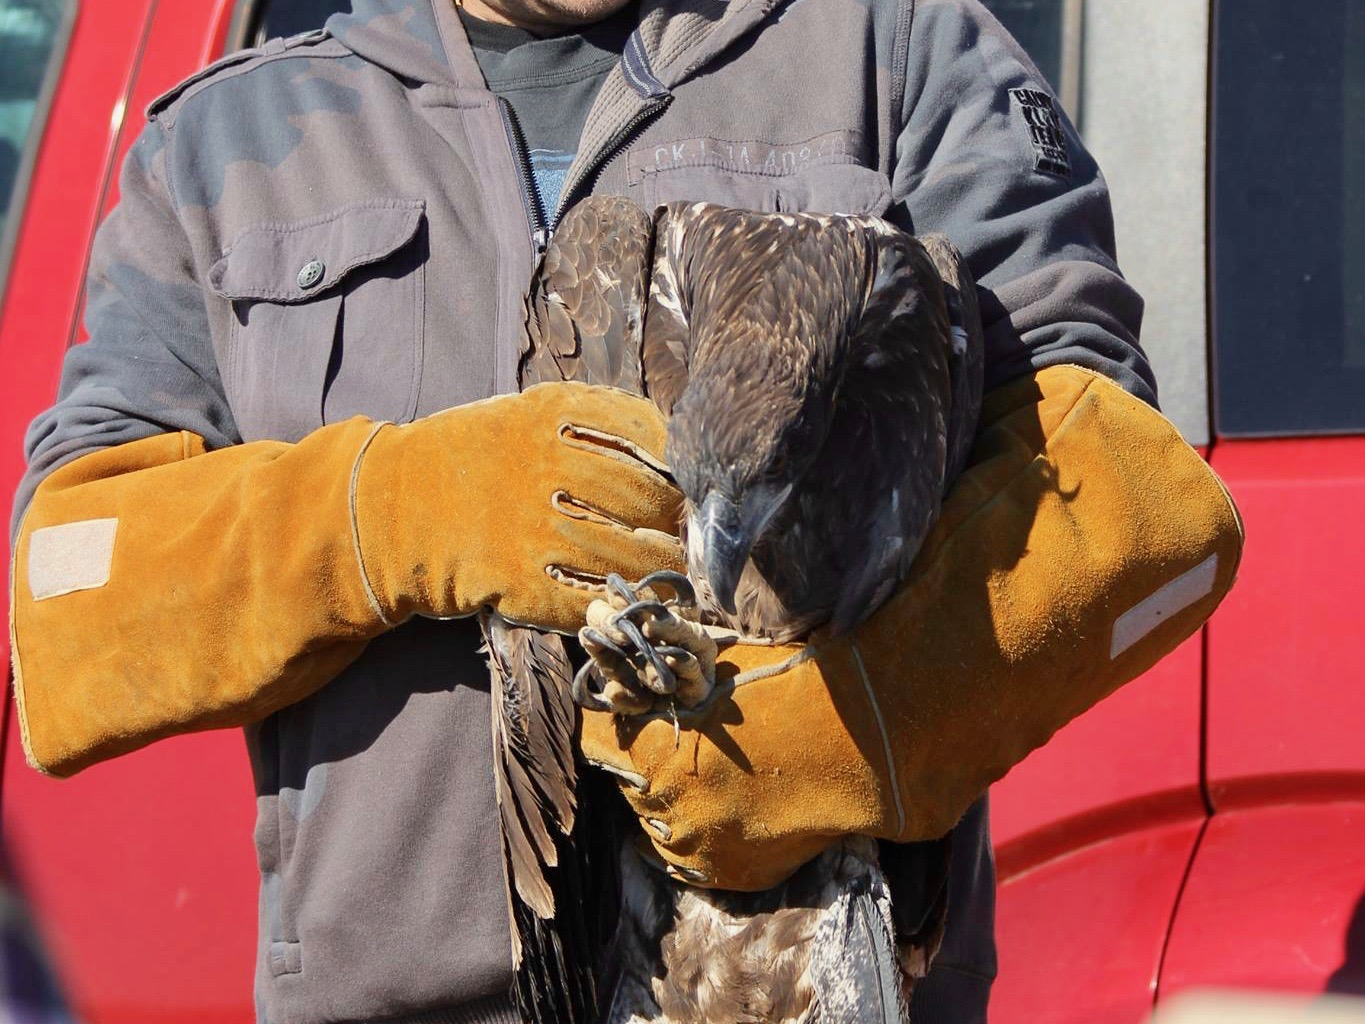 Sisseton Wahpeton Oyate celebrates release of bald eagle that had been shot